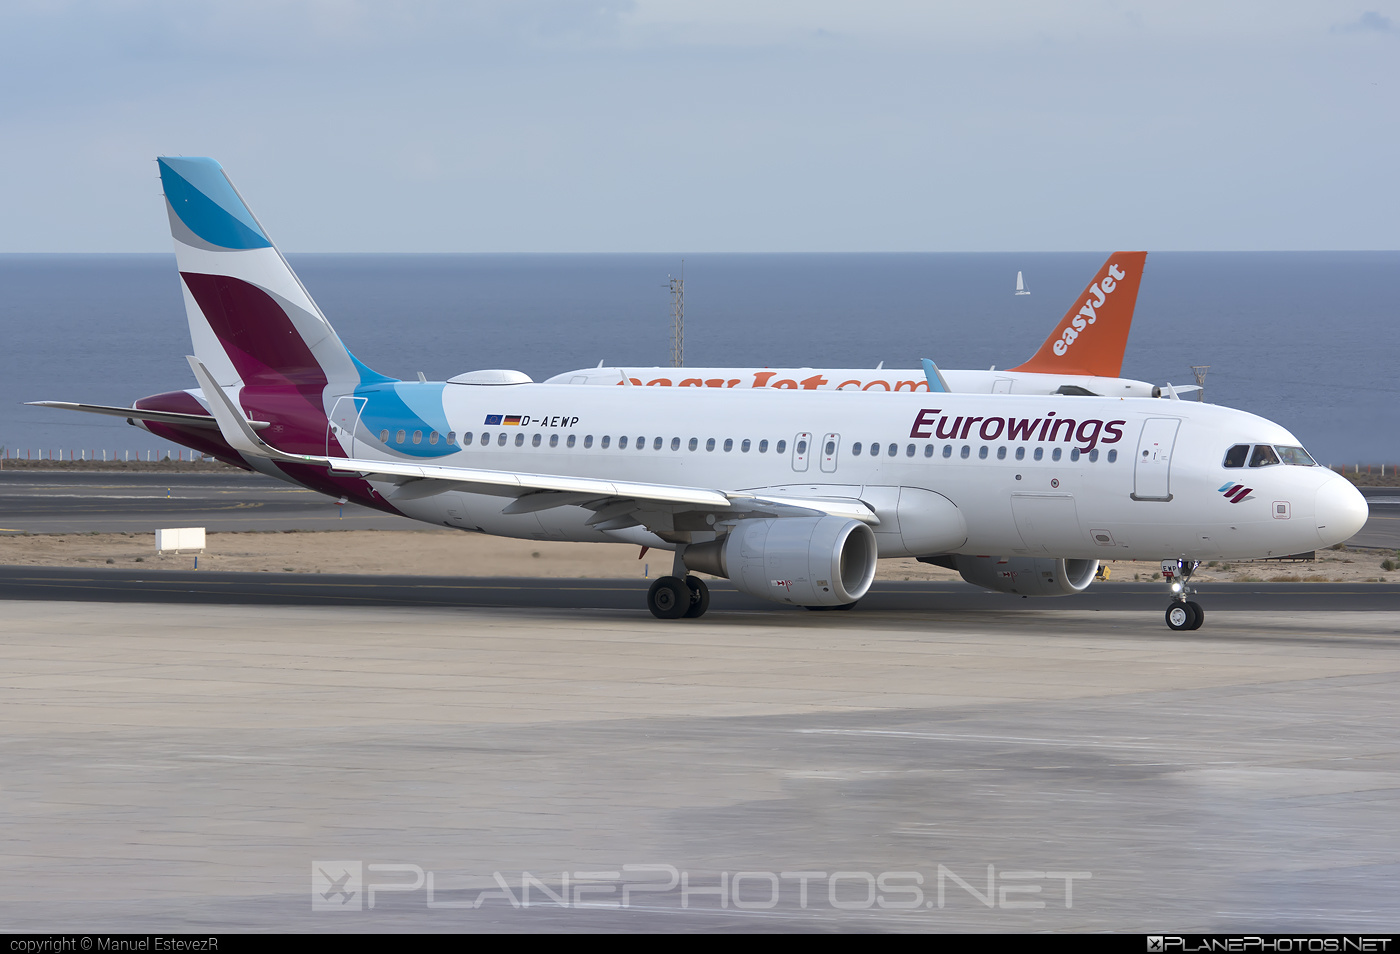 Airbus A320-214 - D-AEWP operated by Eurowings #a320 #a320family #airbus #airbus320 #eurowings